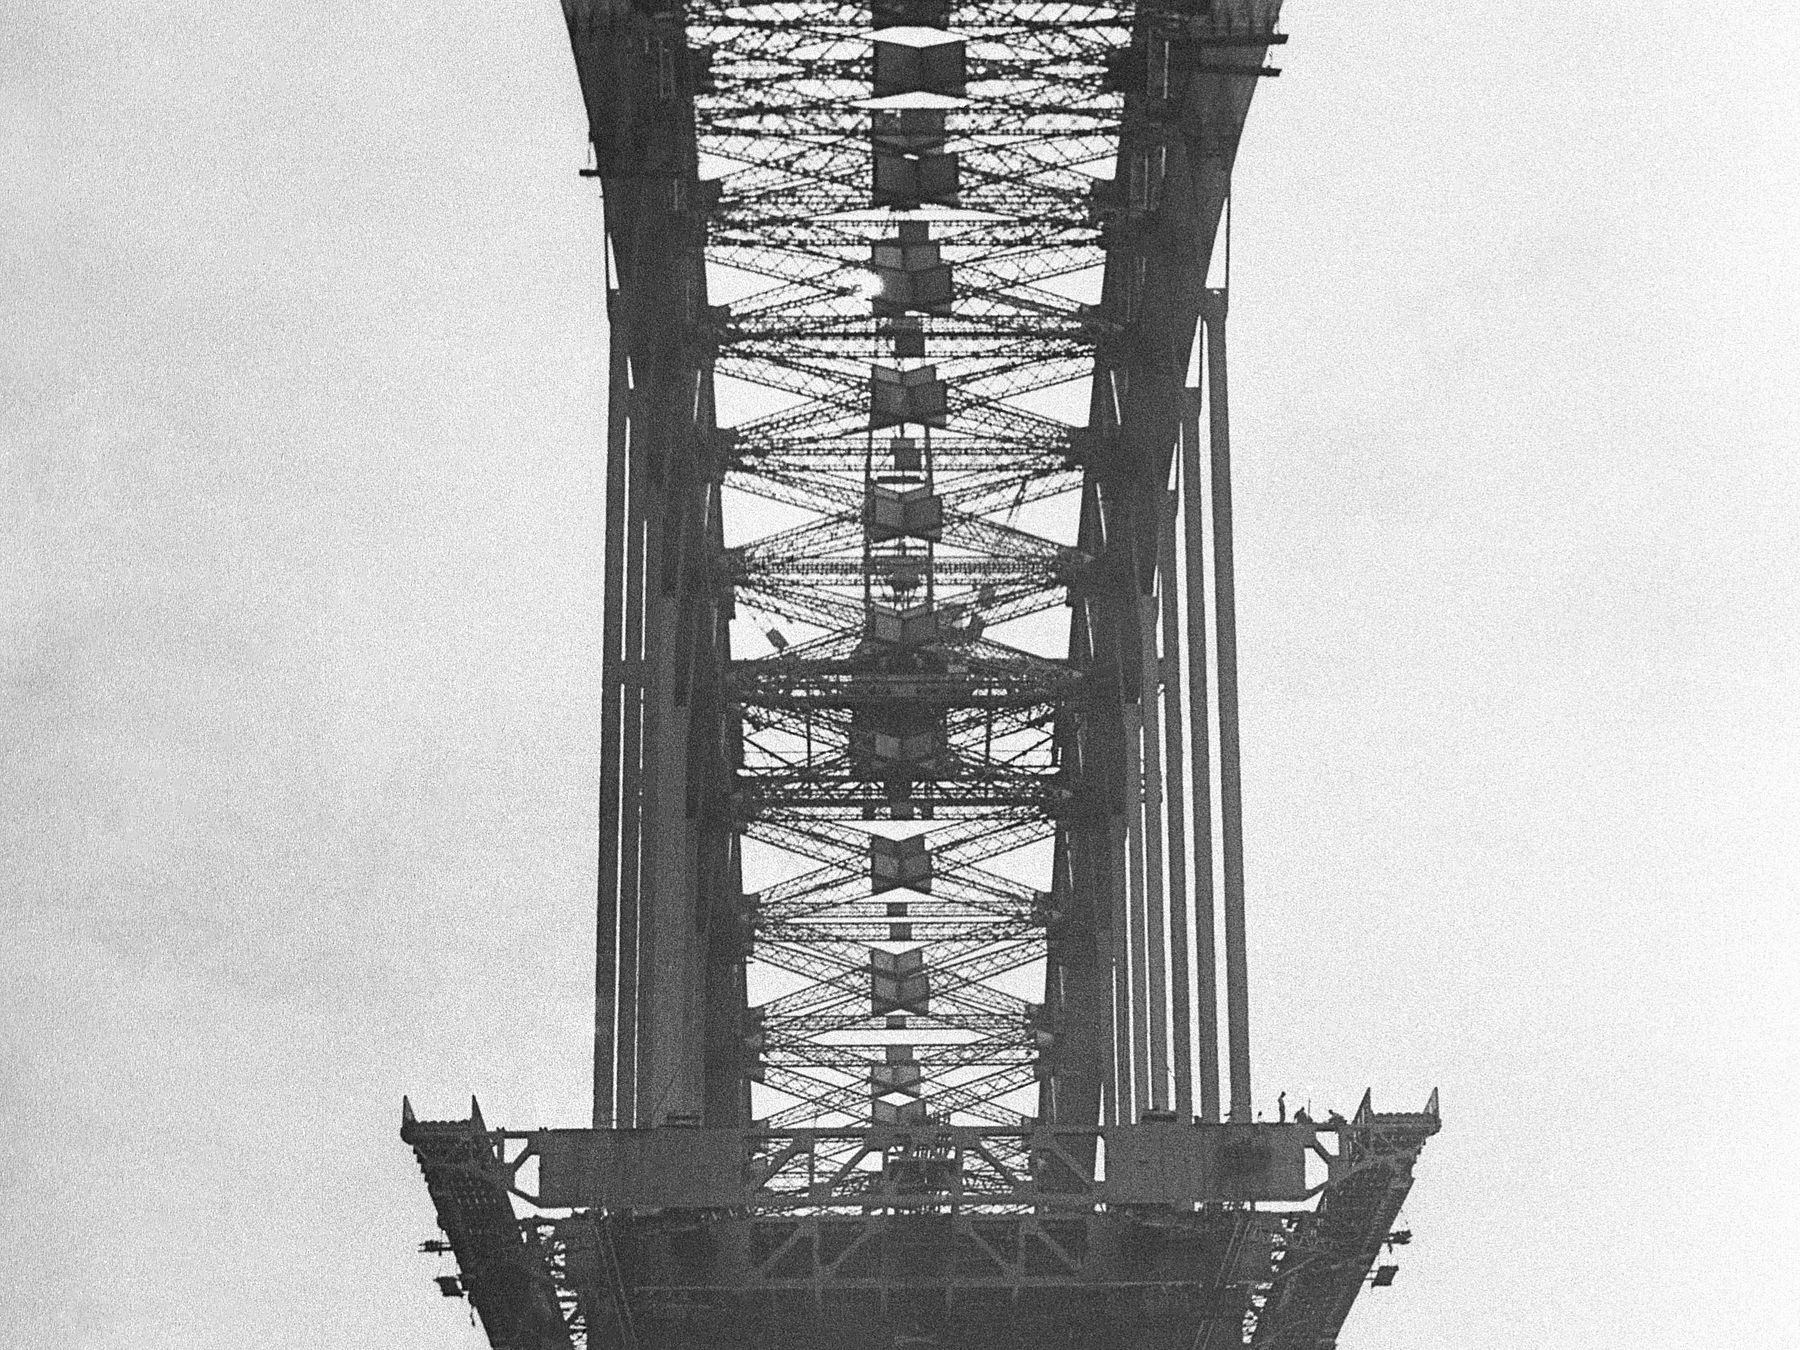 First sections of decking Sydney Harbour Bridge, photograph by Ted Hood, 1911-2000, Home and Away – 2186